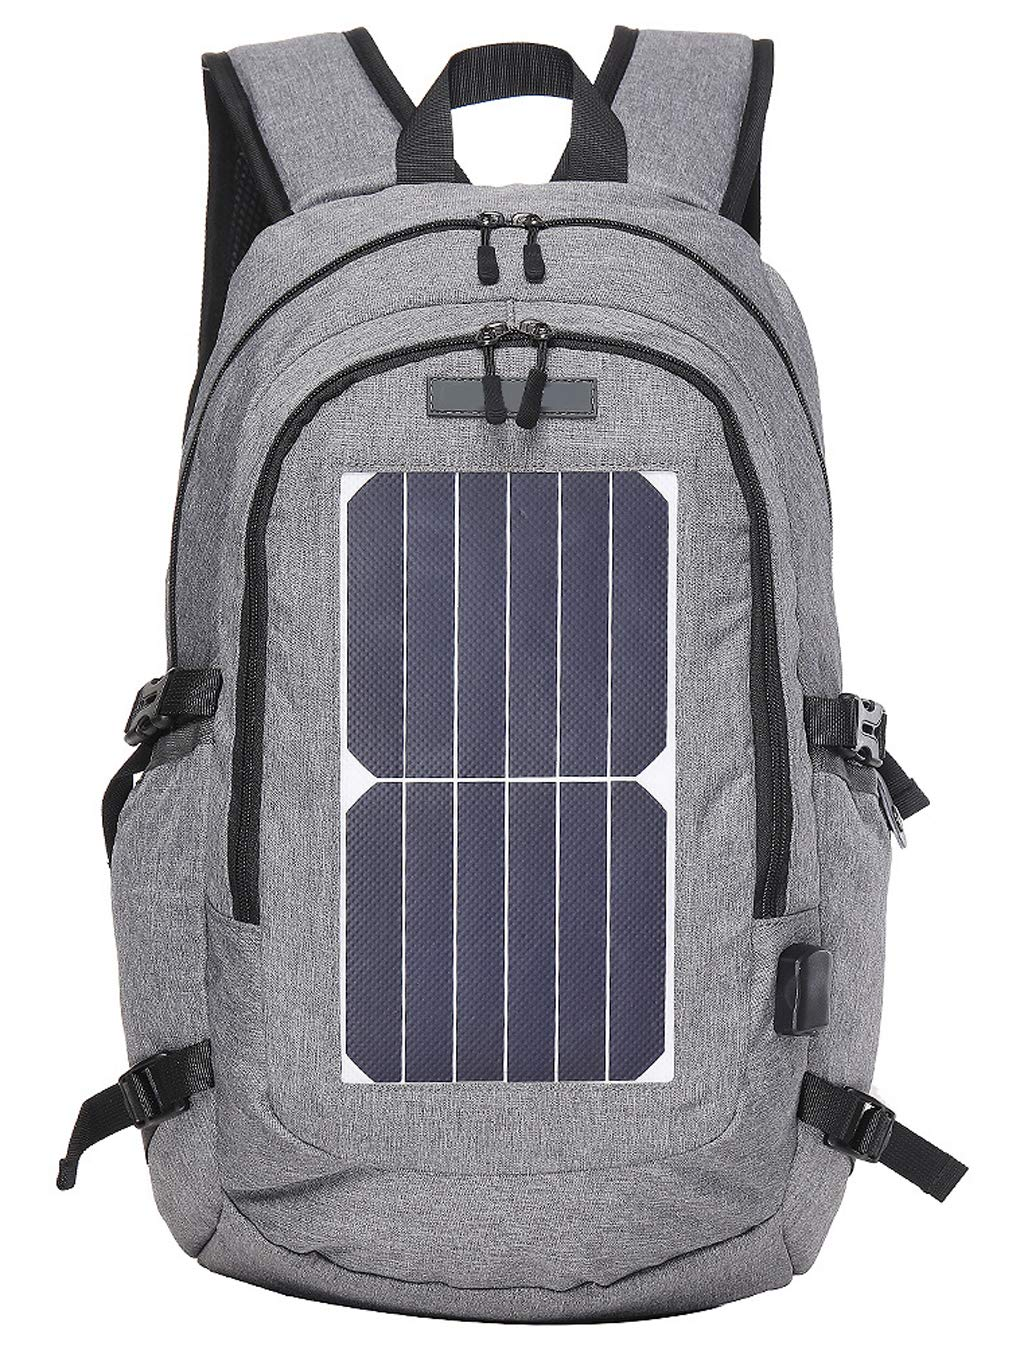 Edith qi Solar Backpack,Laptop Backpack, Business Bags with 5V USB Charging Port Water Resistant School Bookbag for College Travel Backpack for Laptop and Notebook